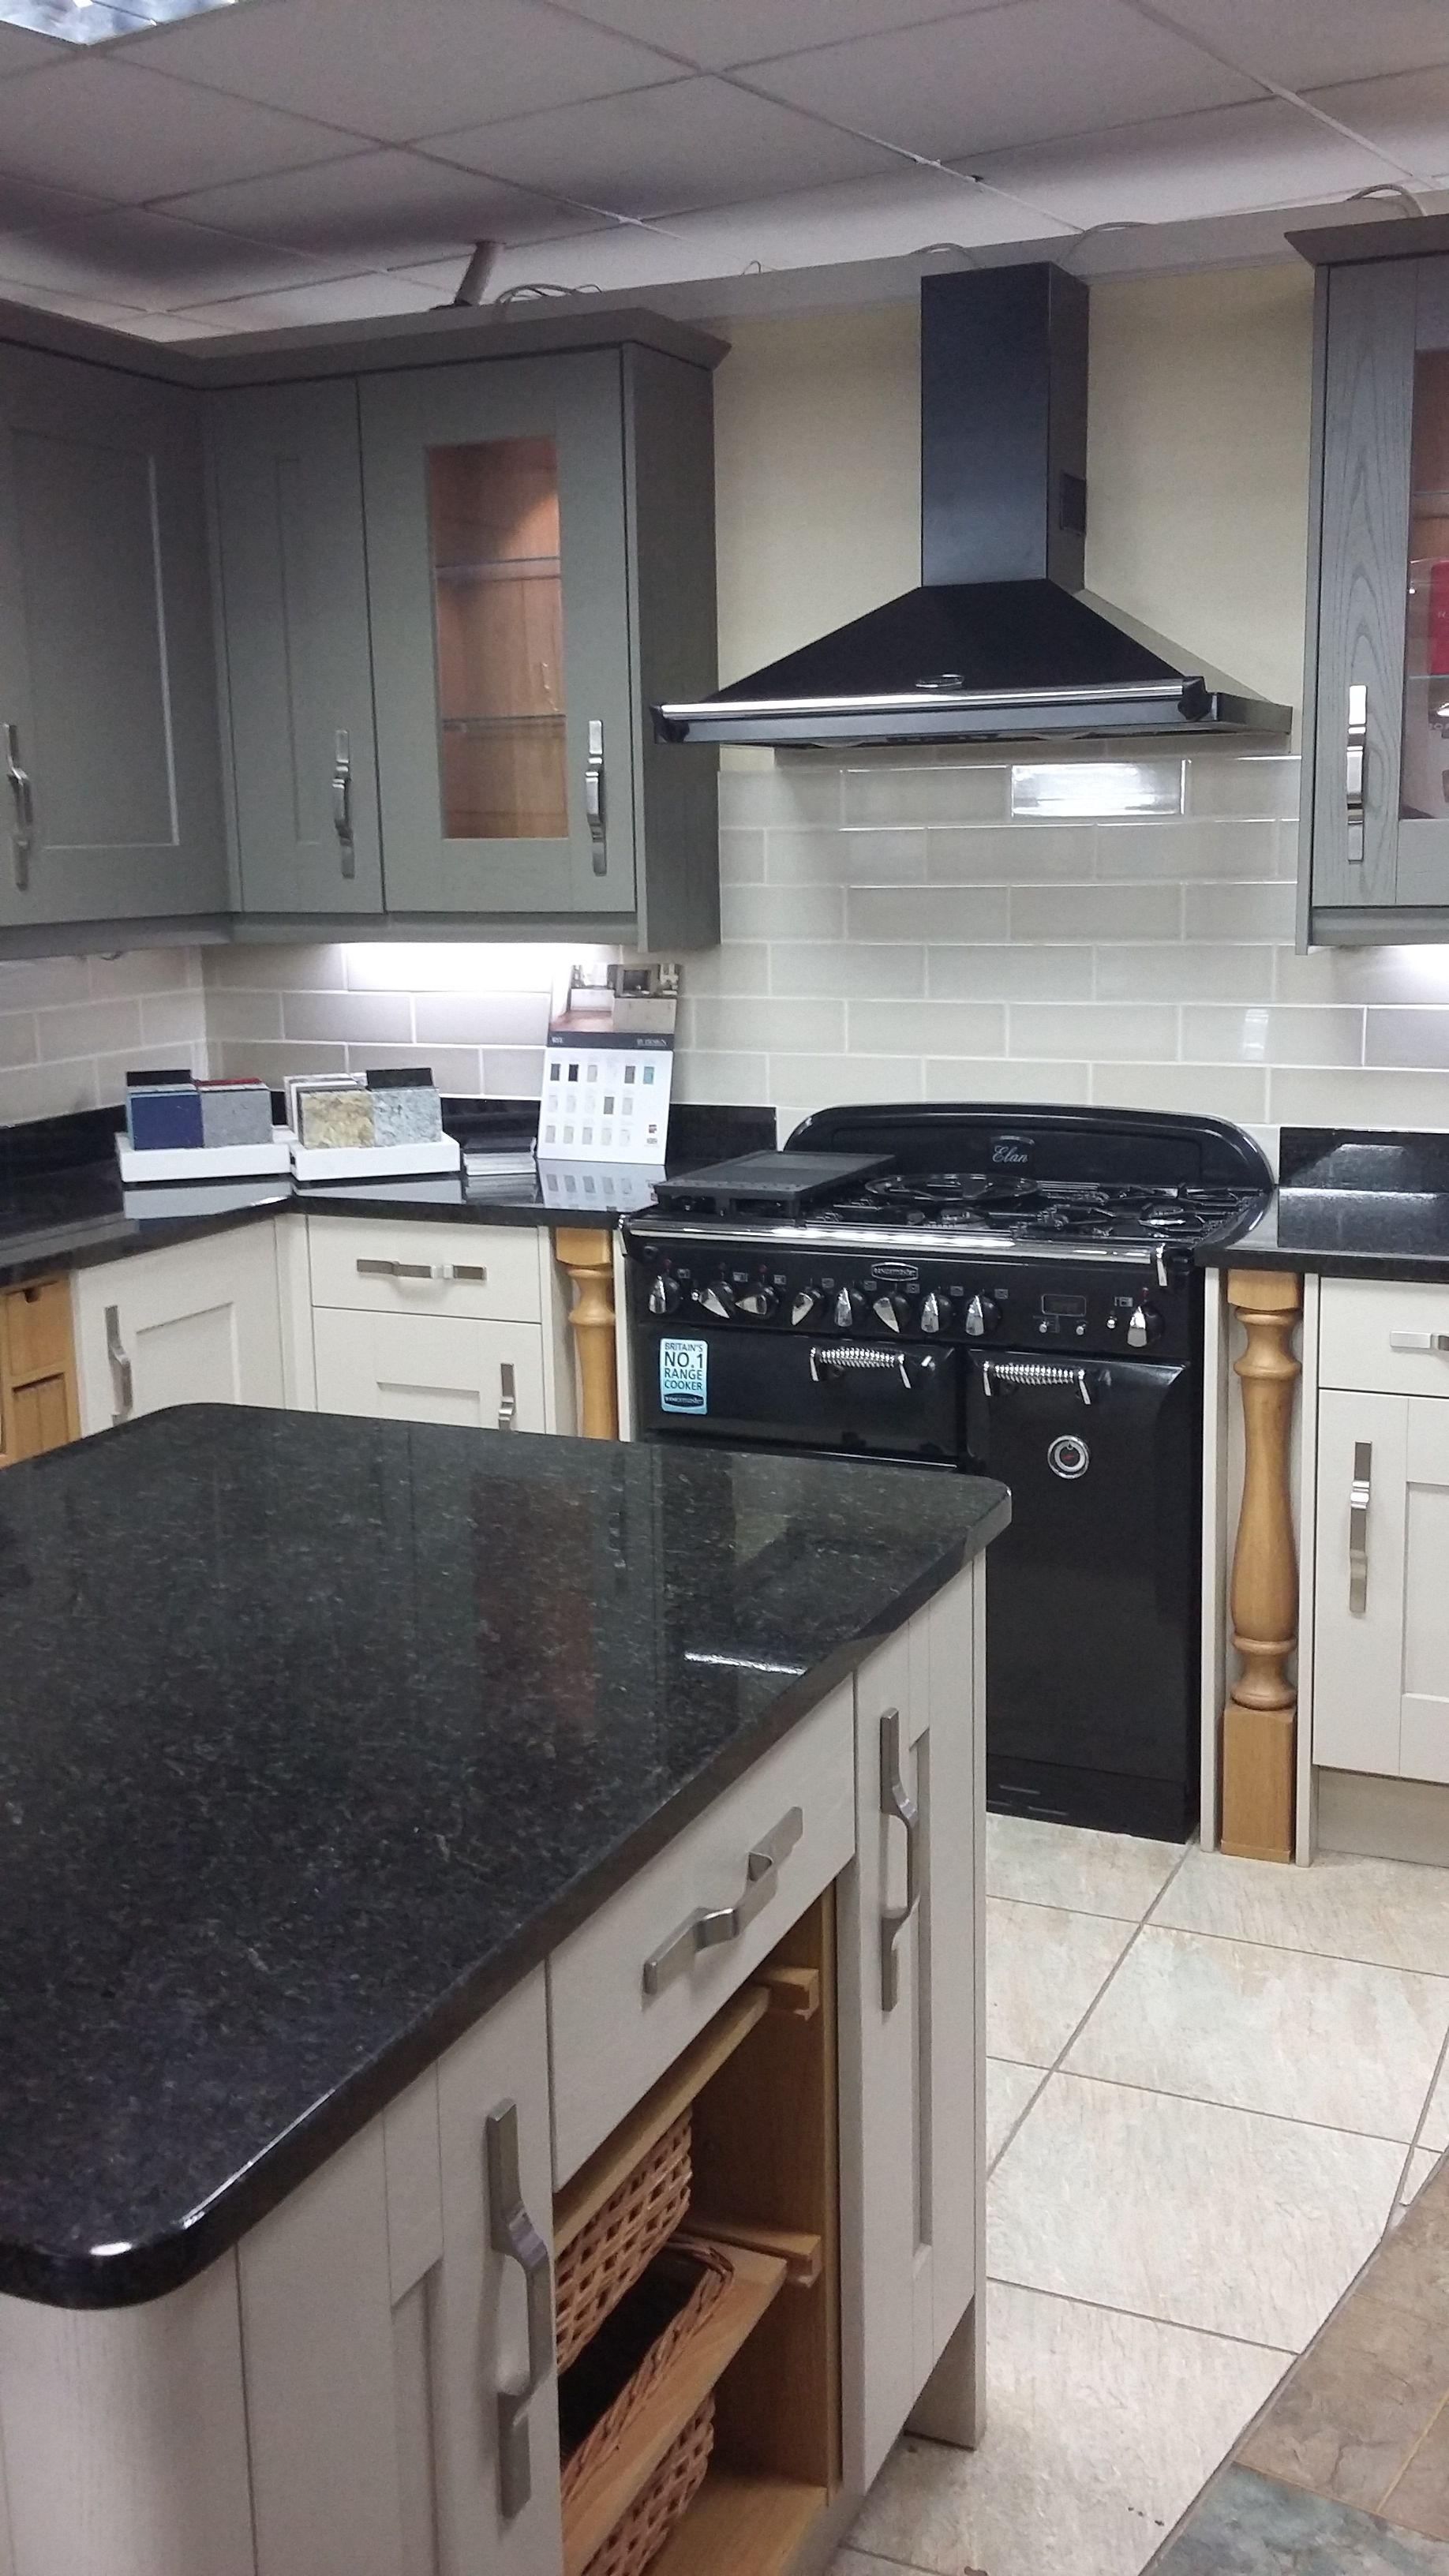 By Design Rye Painted Timber Shaker Kitchen With Rangemaster On Display In Our Stratford Upon Avon Showroom Shaker Kitchen Kitchen Kitchen Cabinets